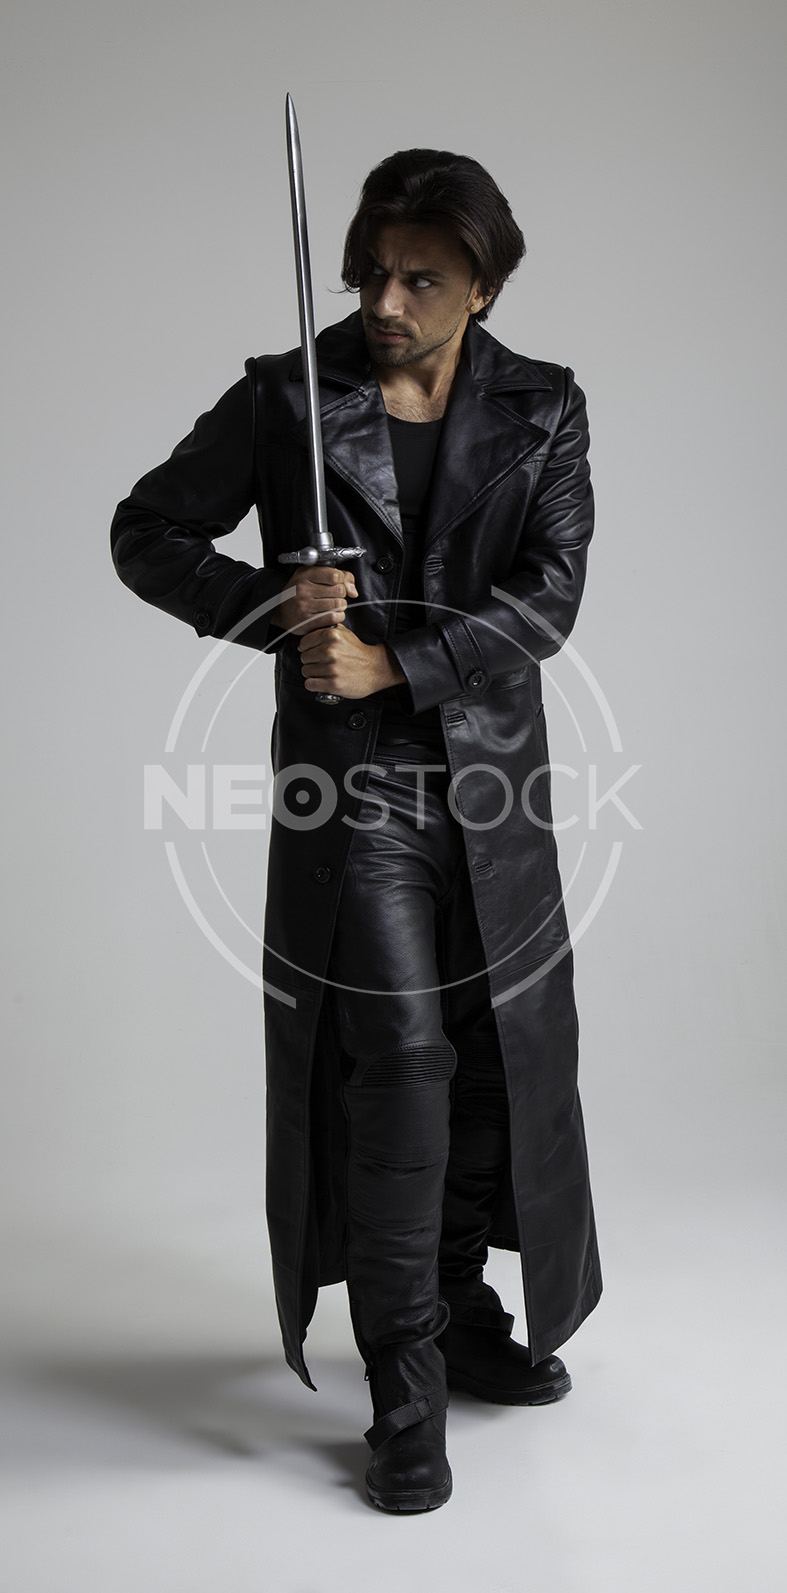 NeoStock -Daniel I, Urban Fantasy, Stock Photography